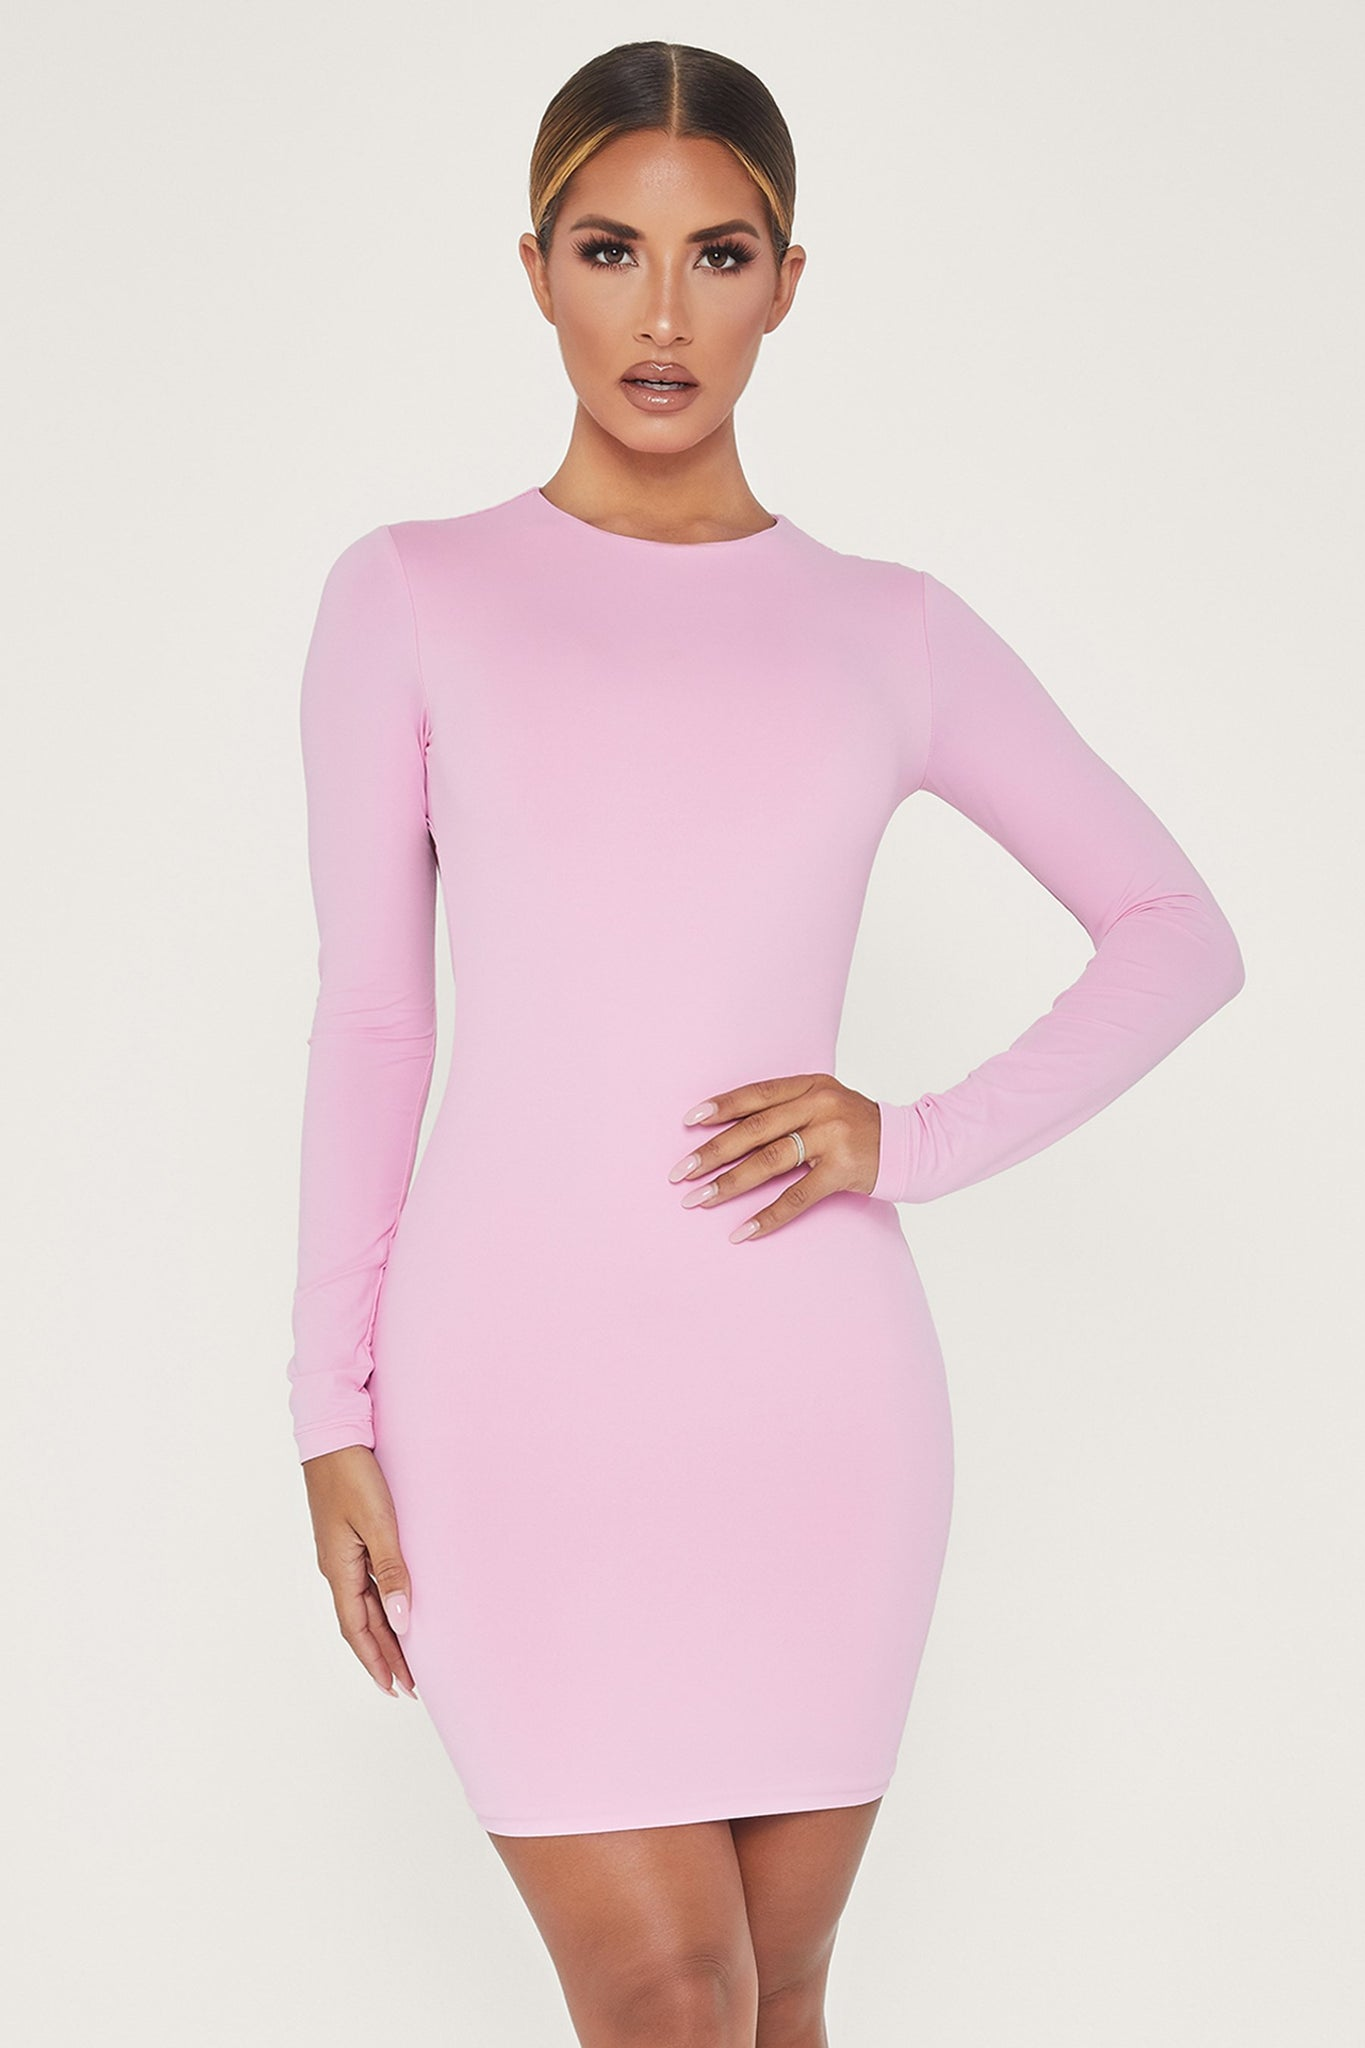 Rayne Long Sleeve Mini Dress - Pink - MESHKI